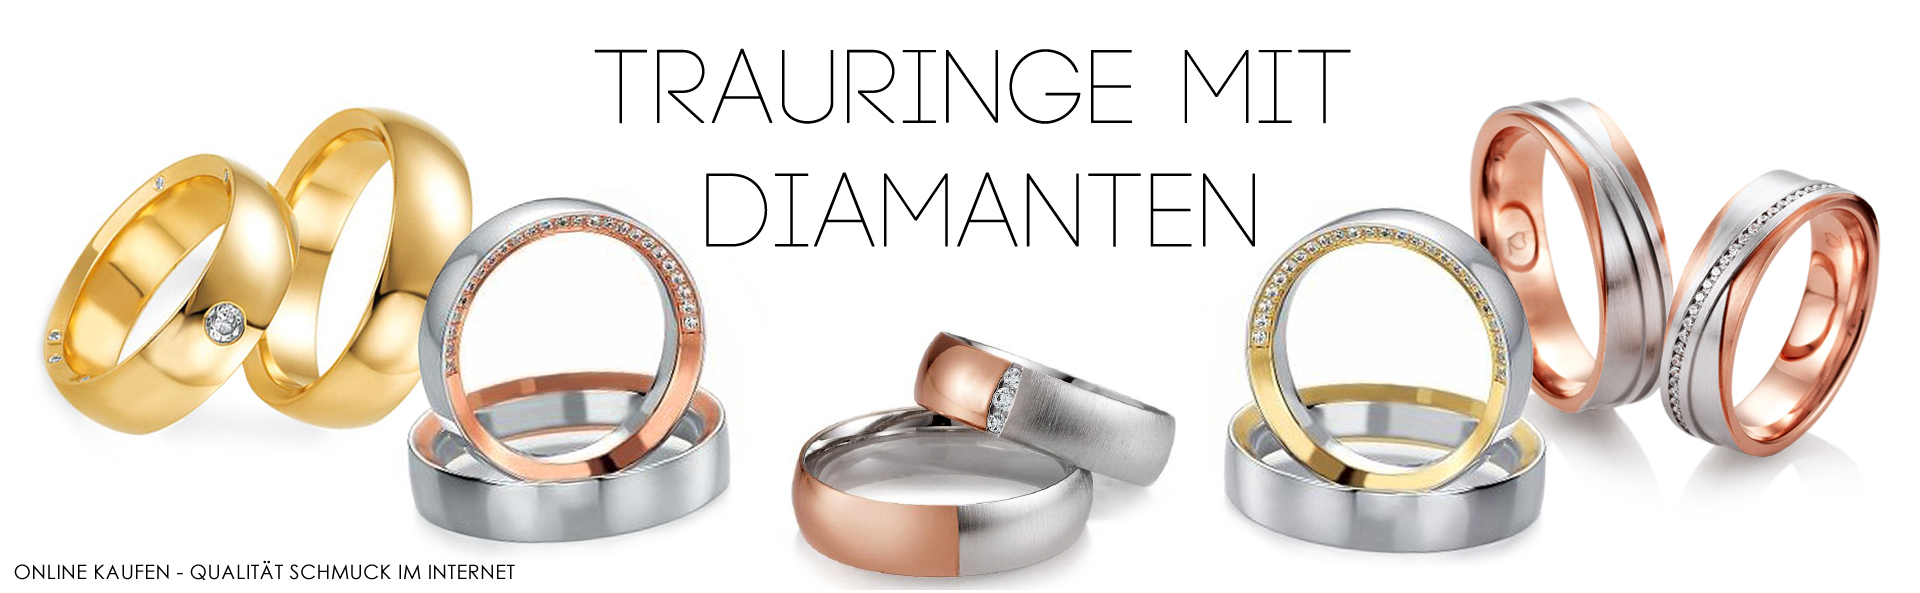 Trauringe mit Diamanten